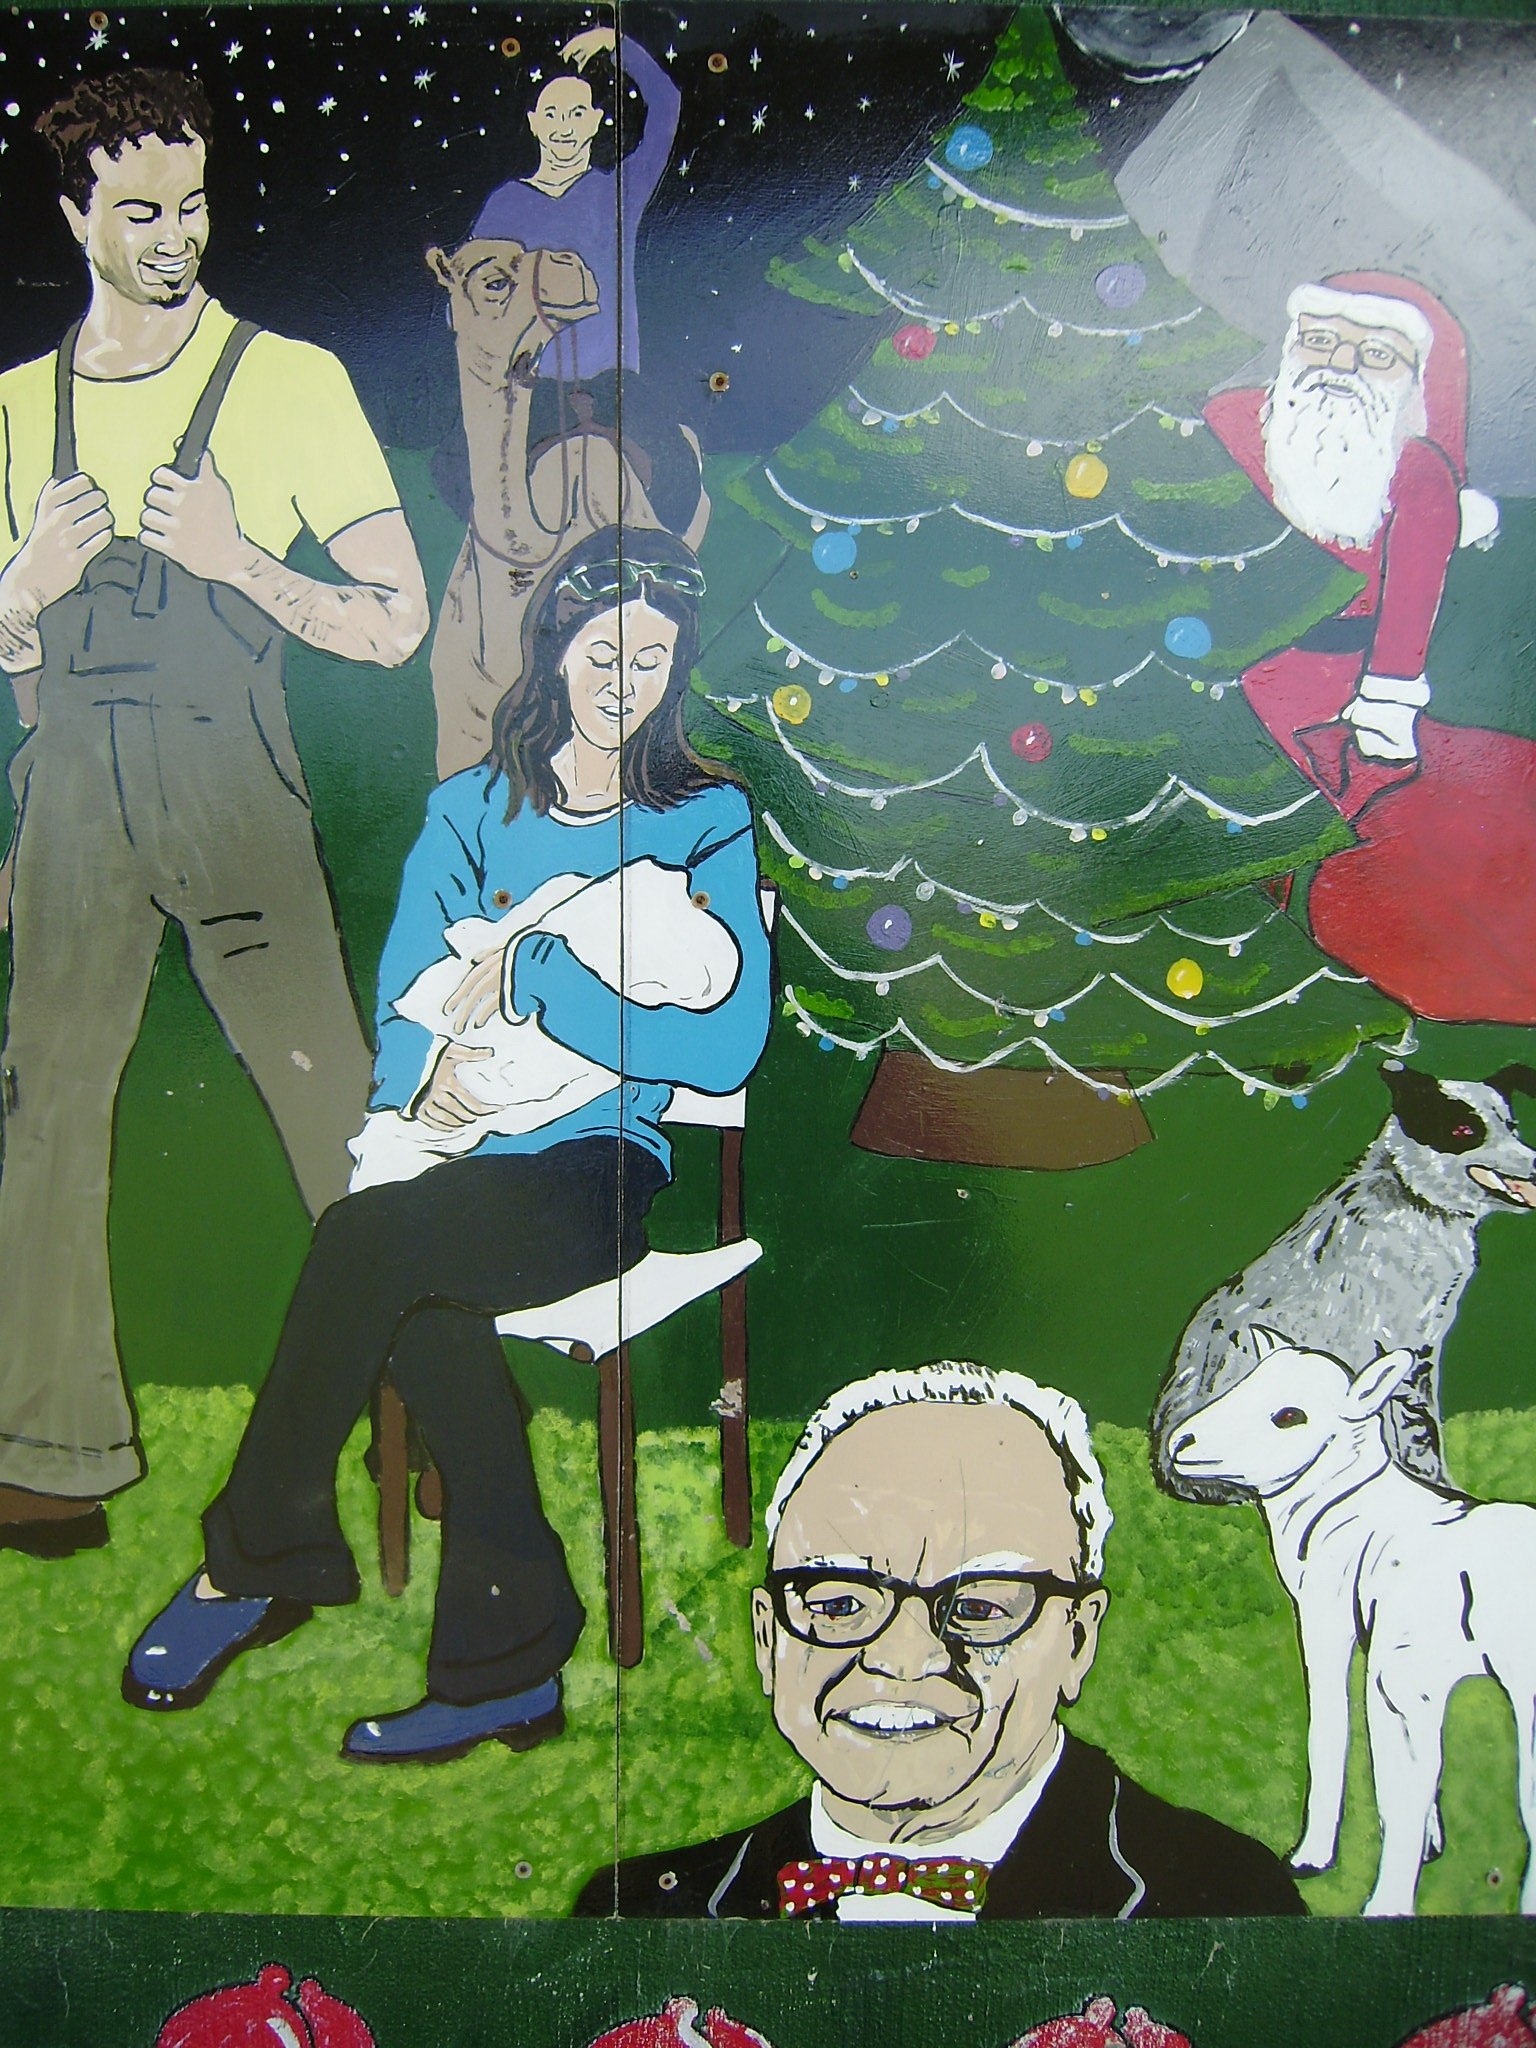 Santa hide sbehind the tree of proud parents; Grampa in the way, again.